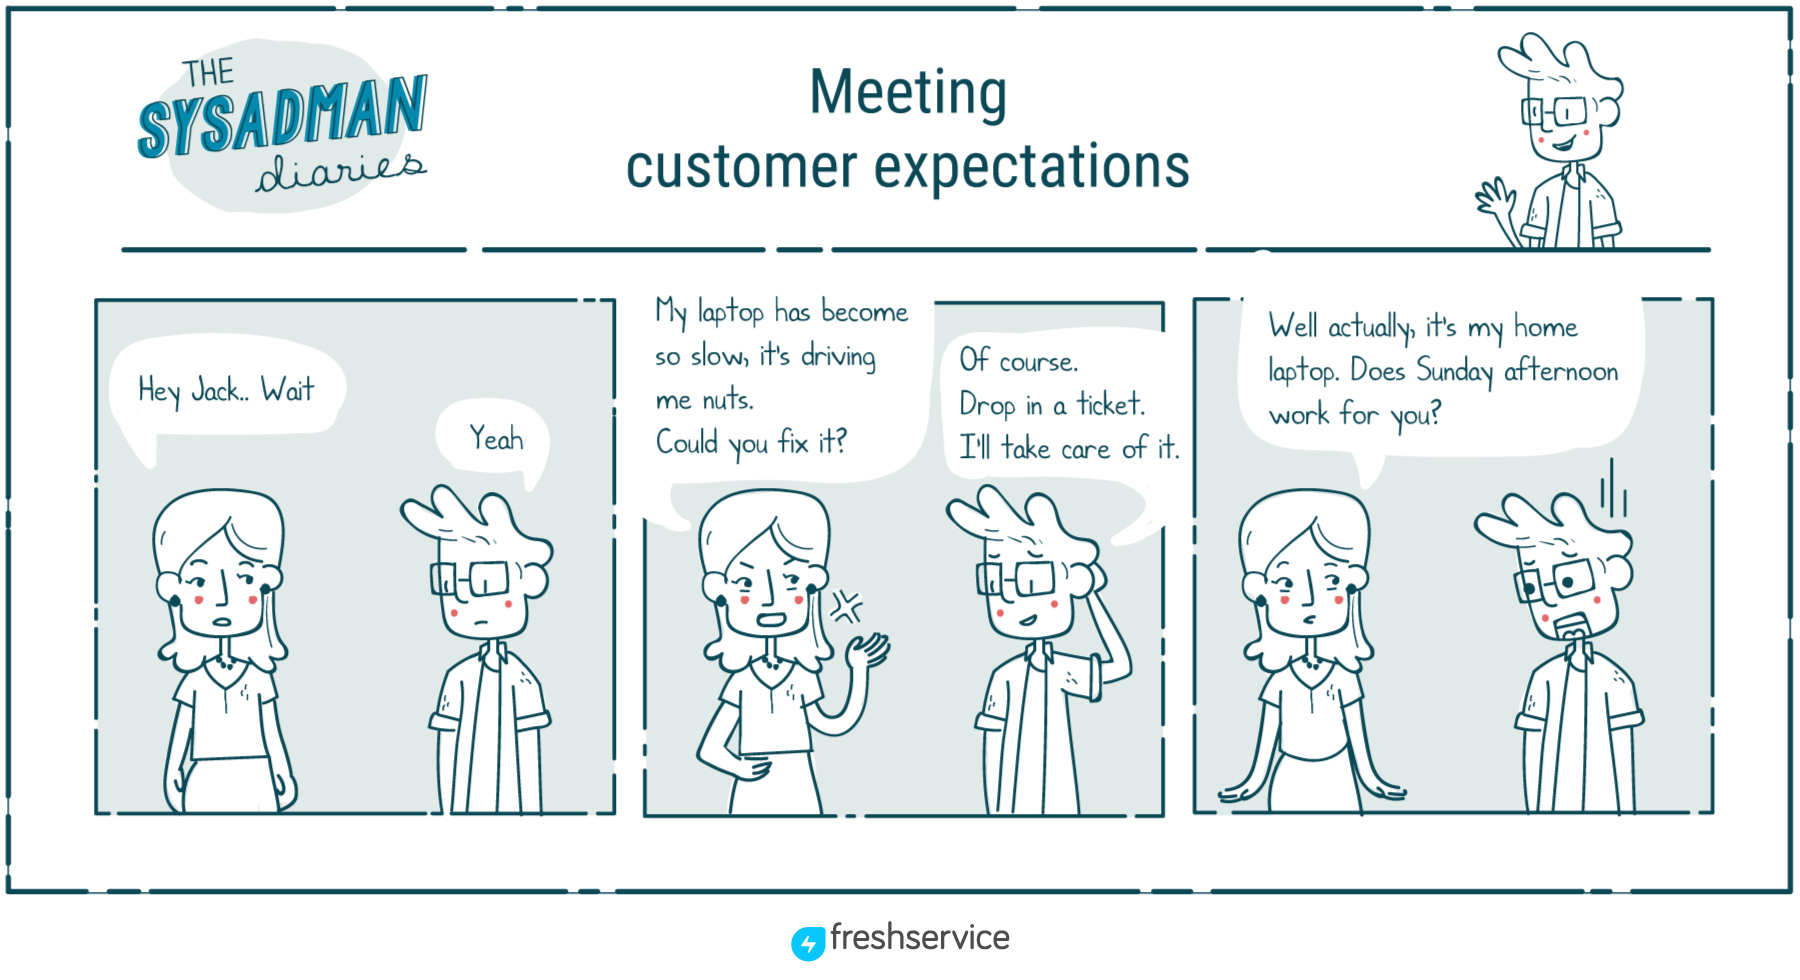 Good ITSM Practices - Meet Customer Expectations